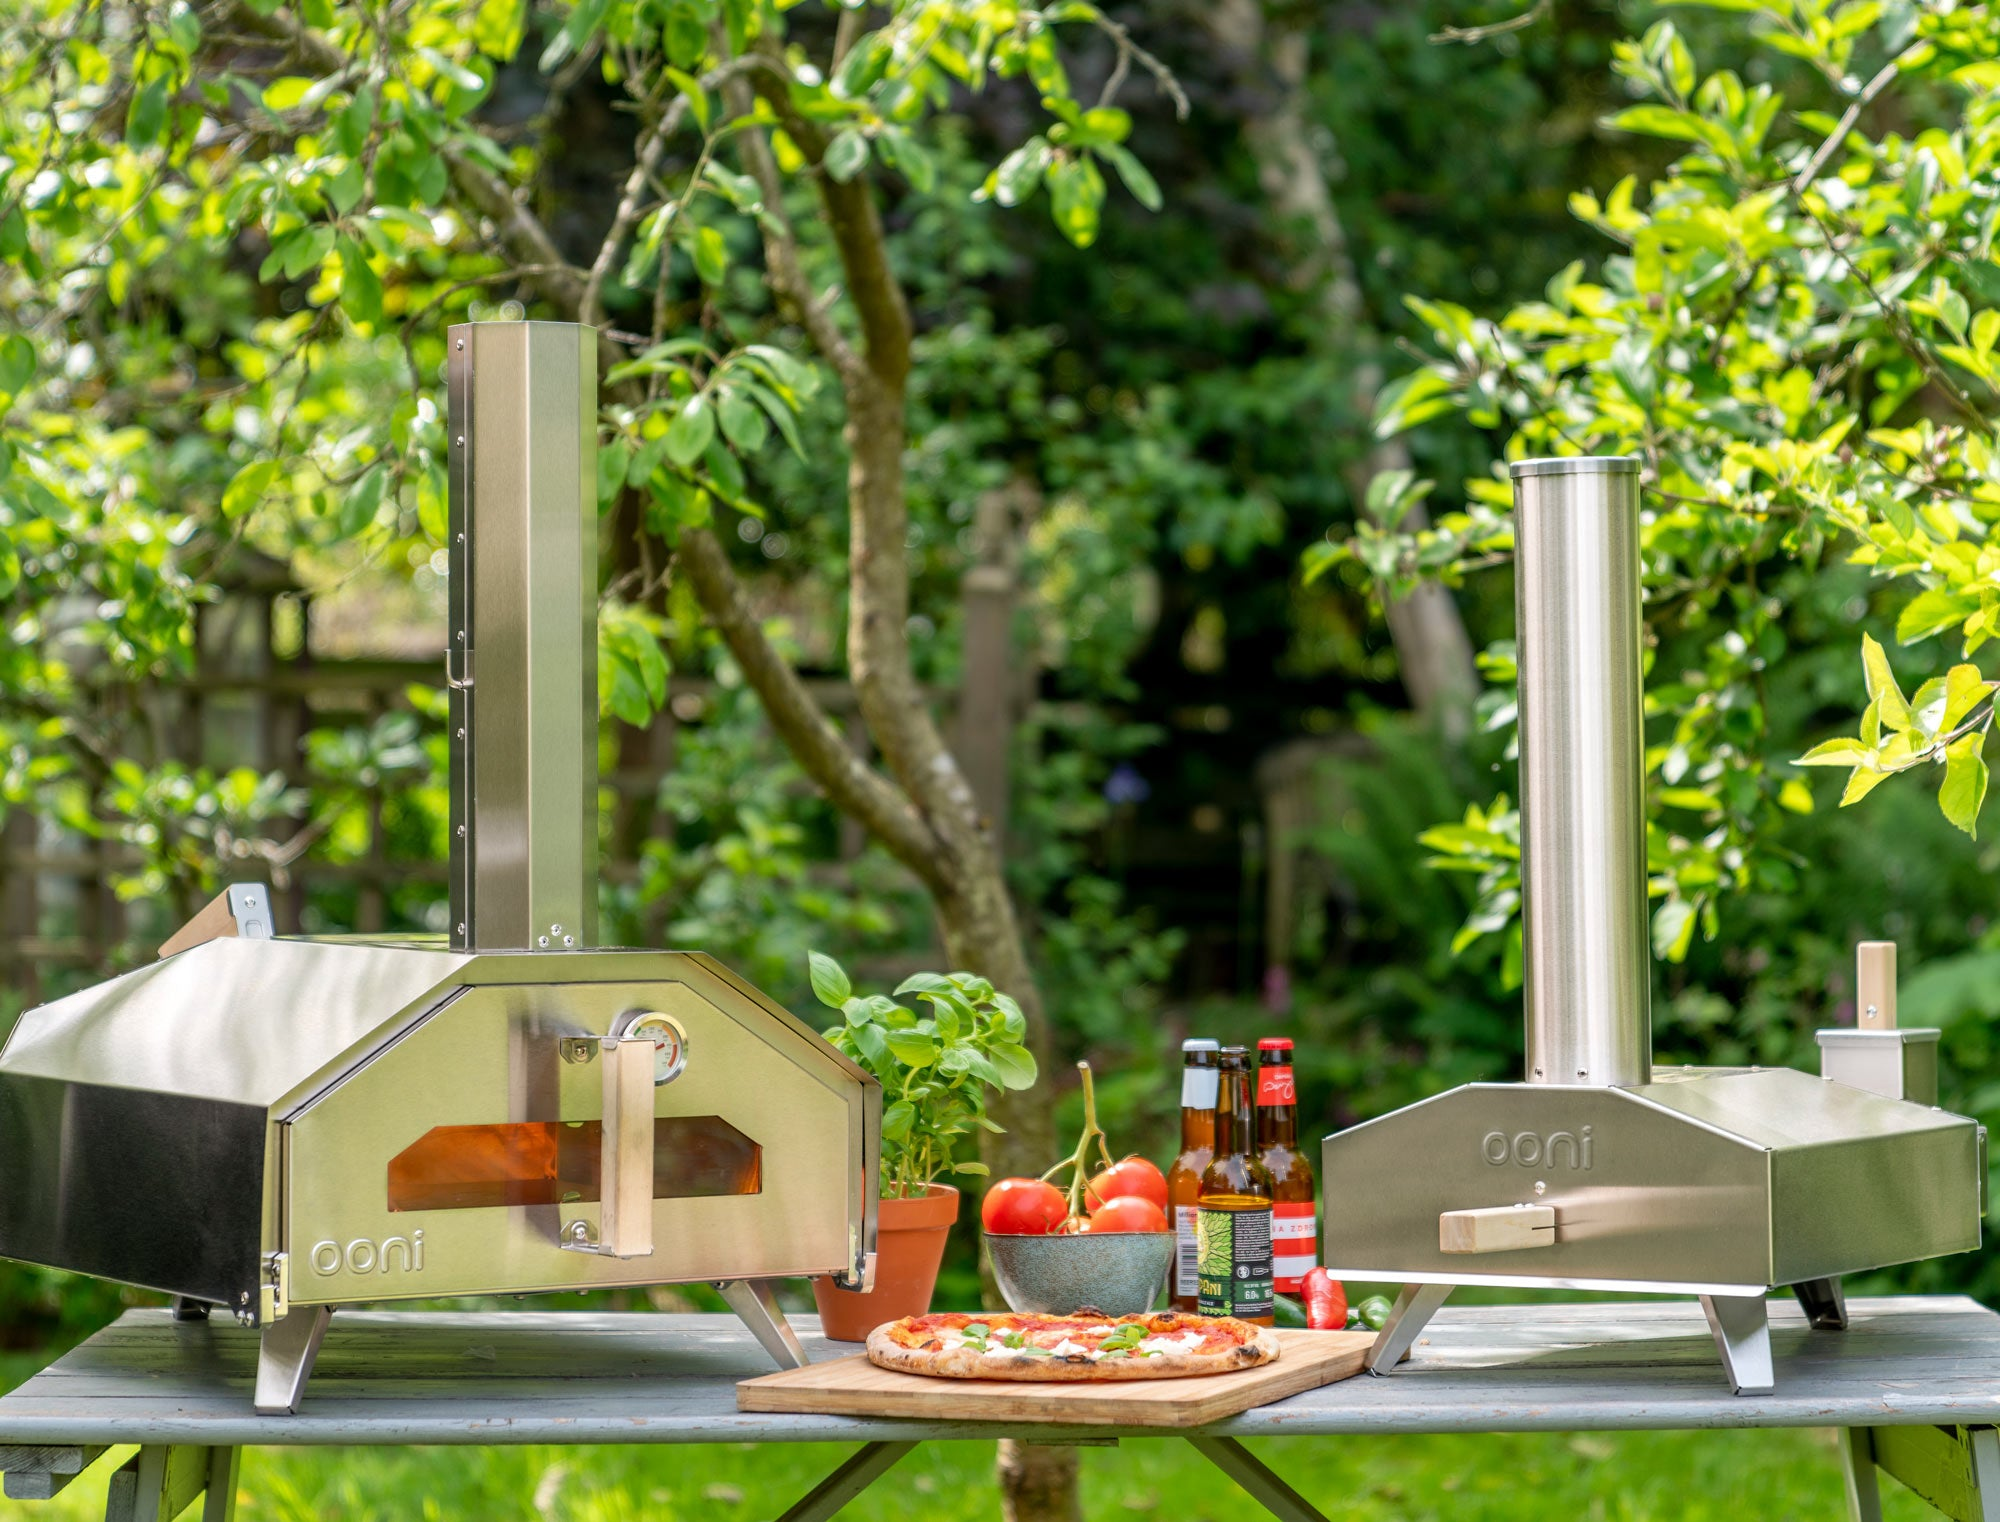 Ooni Pro Multi-Fuel Outdoor Pizza Oven Image